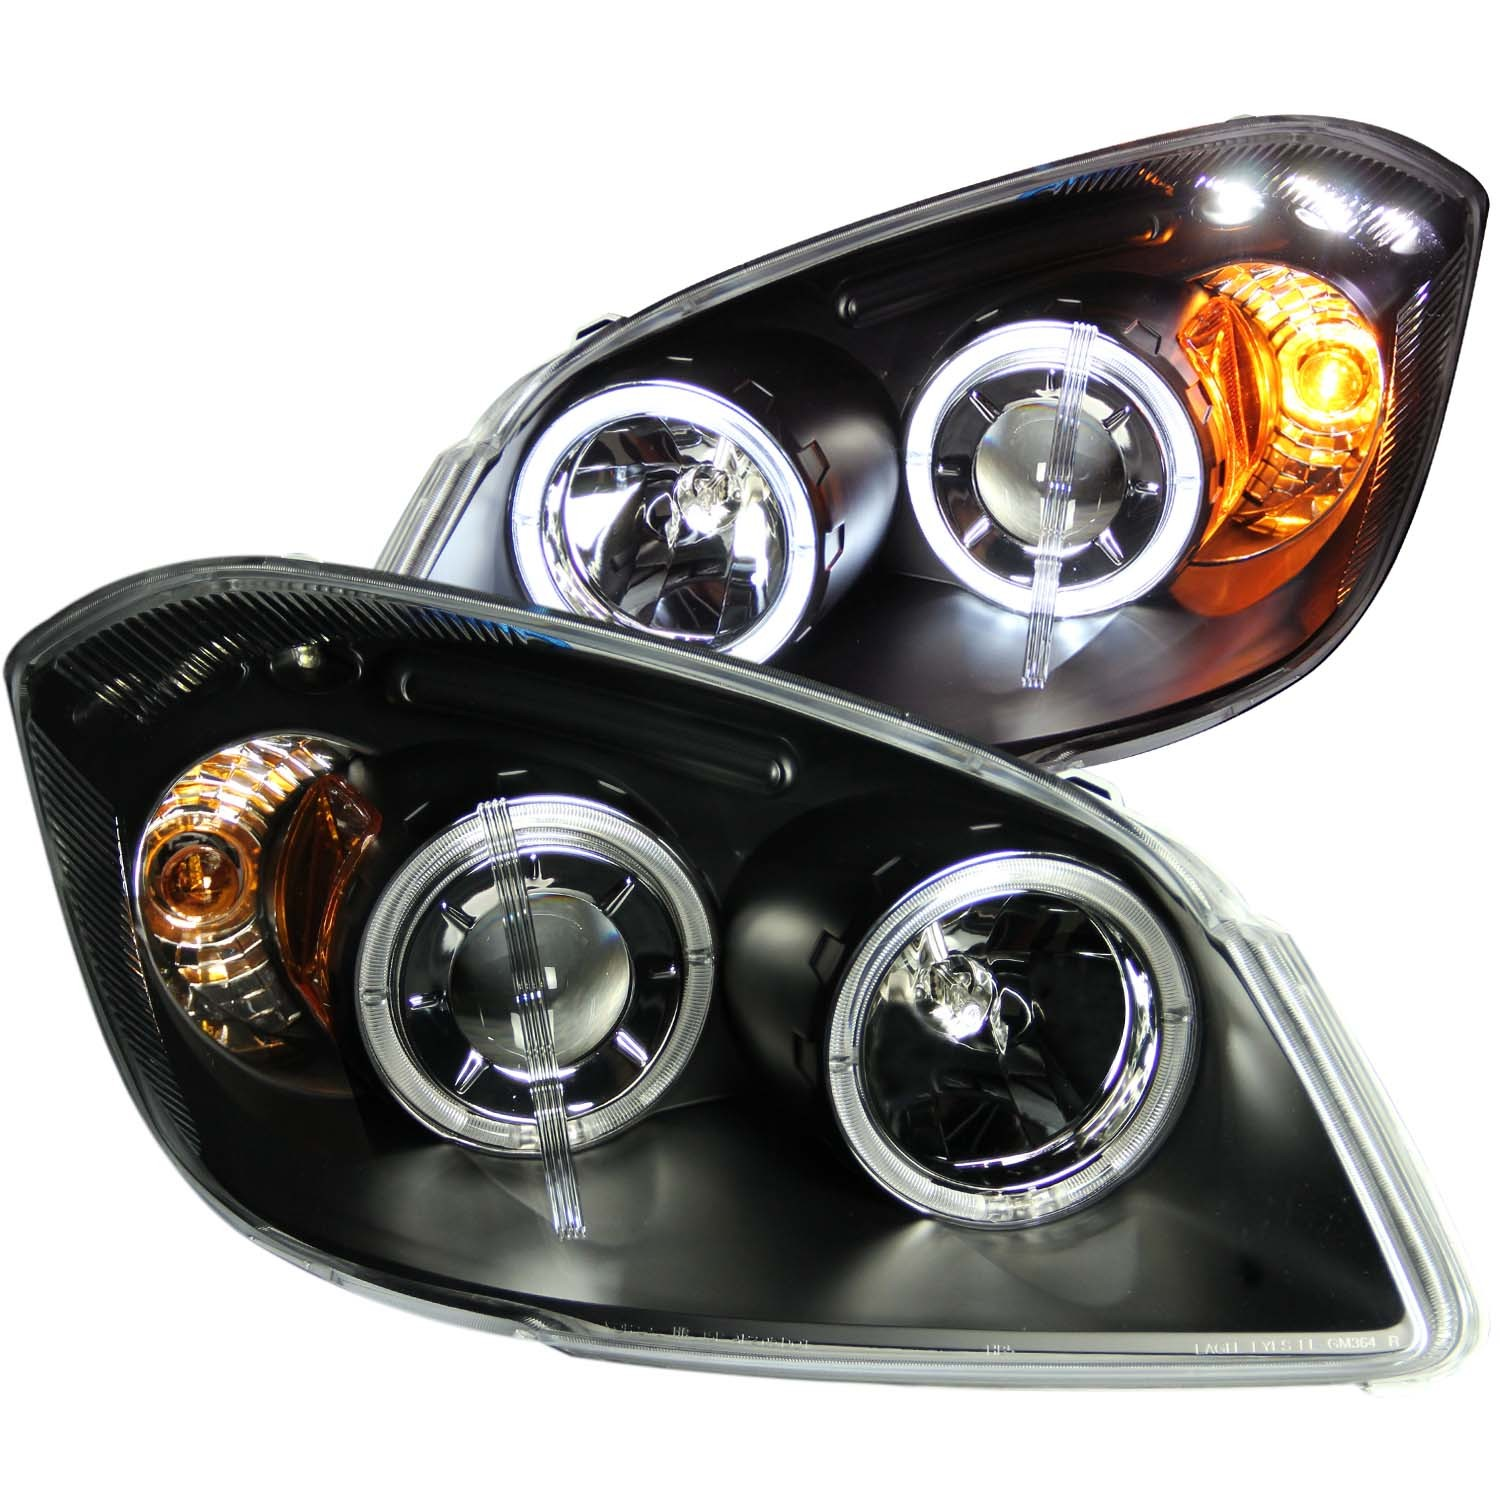 Details About Fits Chevrolet Pontiac Cobalt G5 Headlight Front Left Driver Right Penger